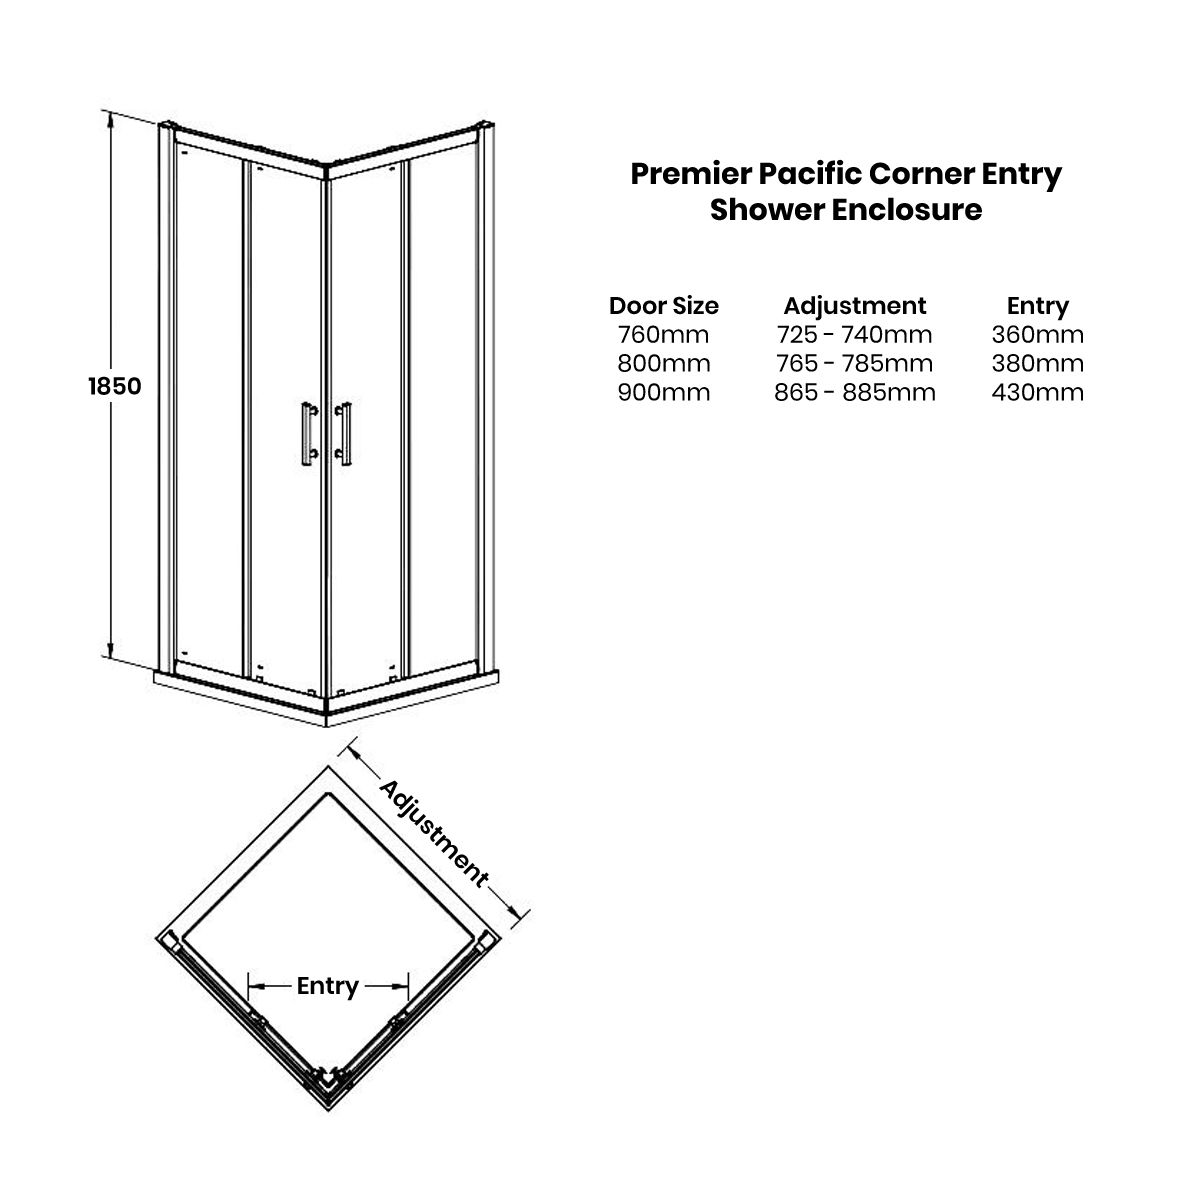 Premier Pacific Corner Entry Shower Enclosure Dimensions